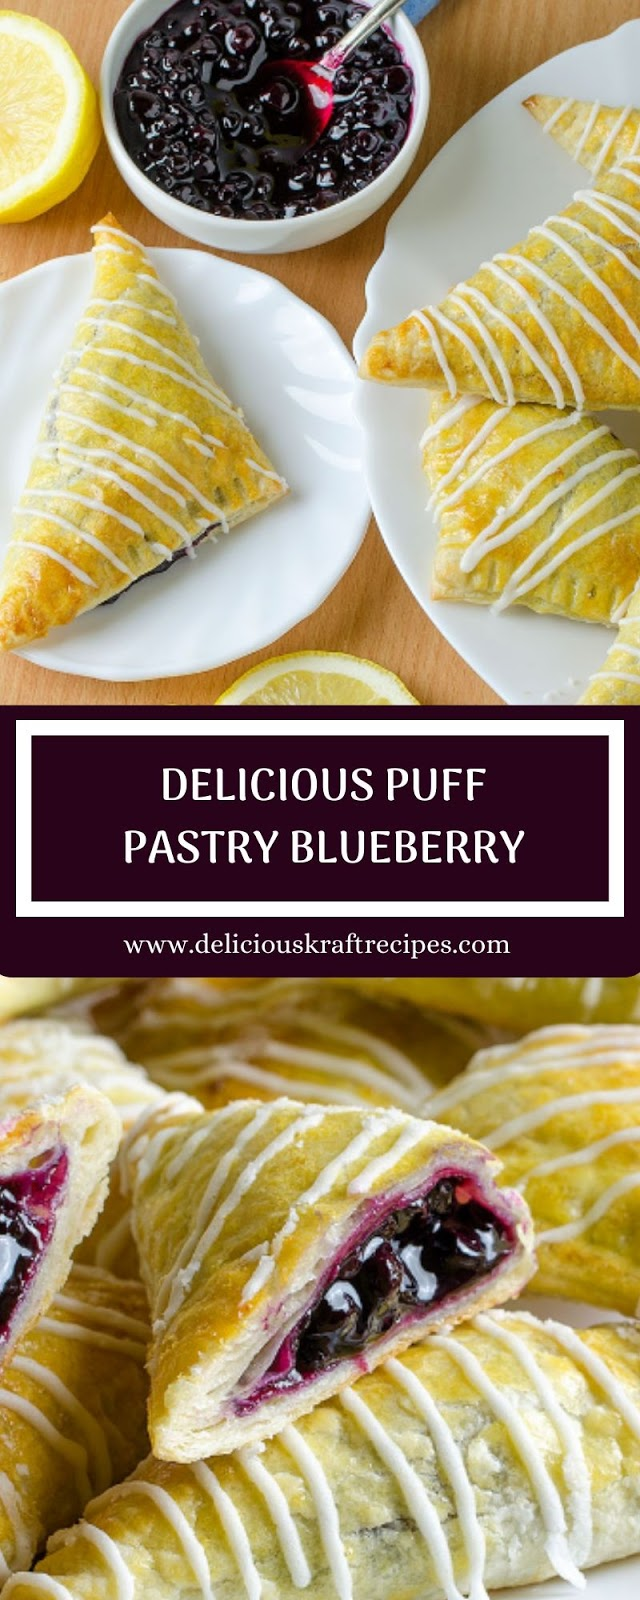 DELICIOUS PUFF PASTRY BLUEBERRY